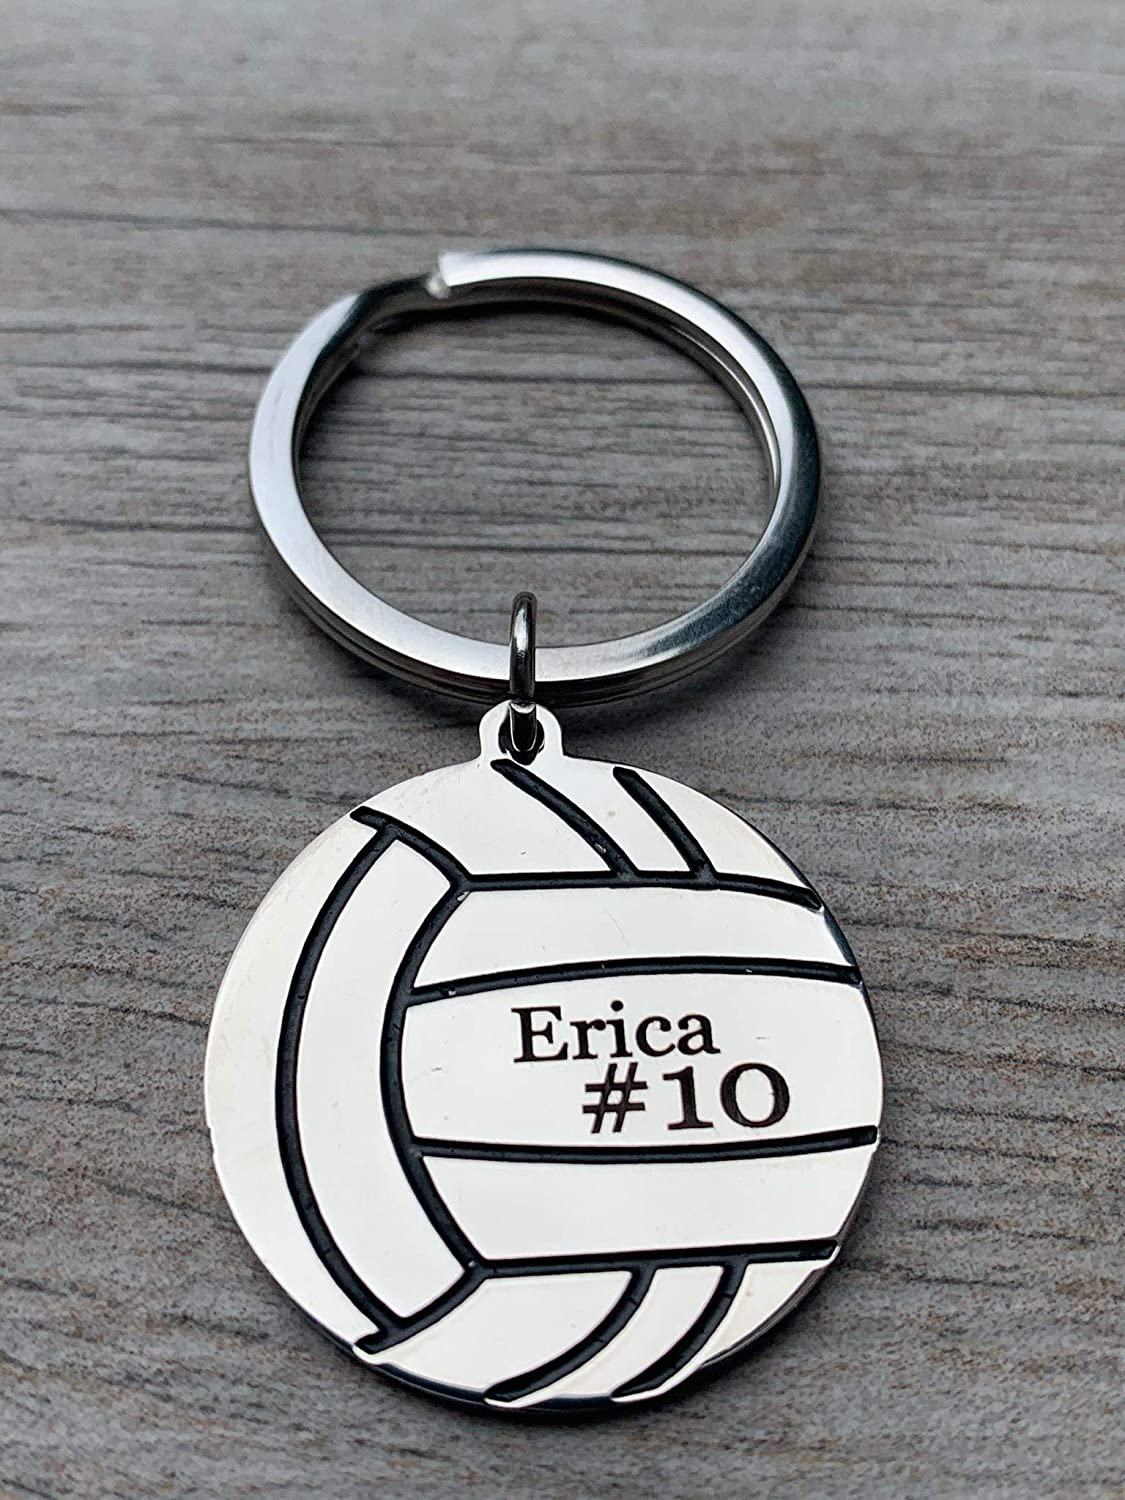 Volleyball Team Player Personalized Key Chain Engraved